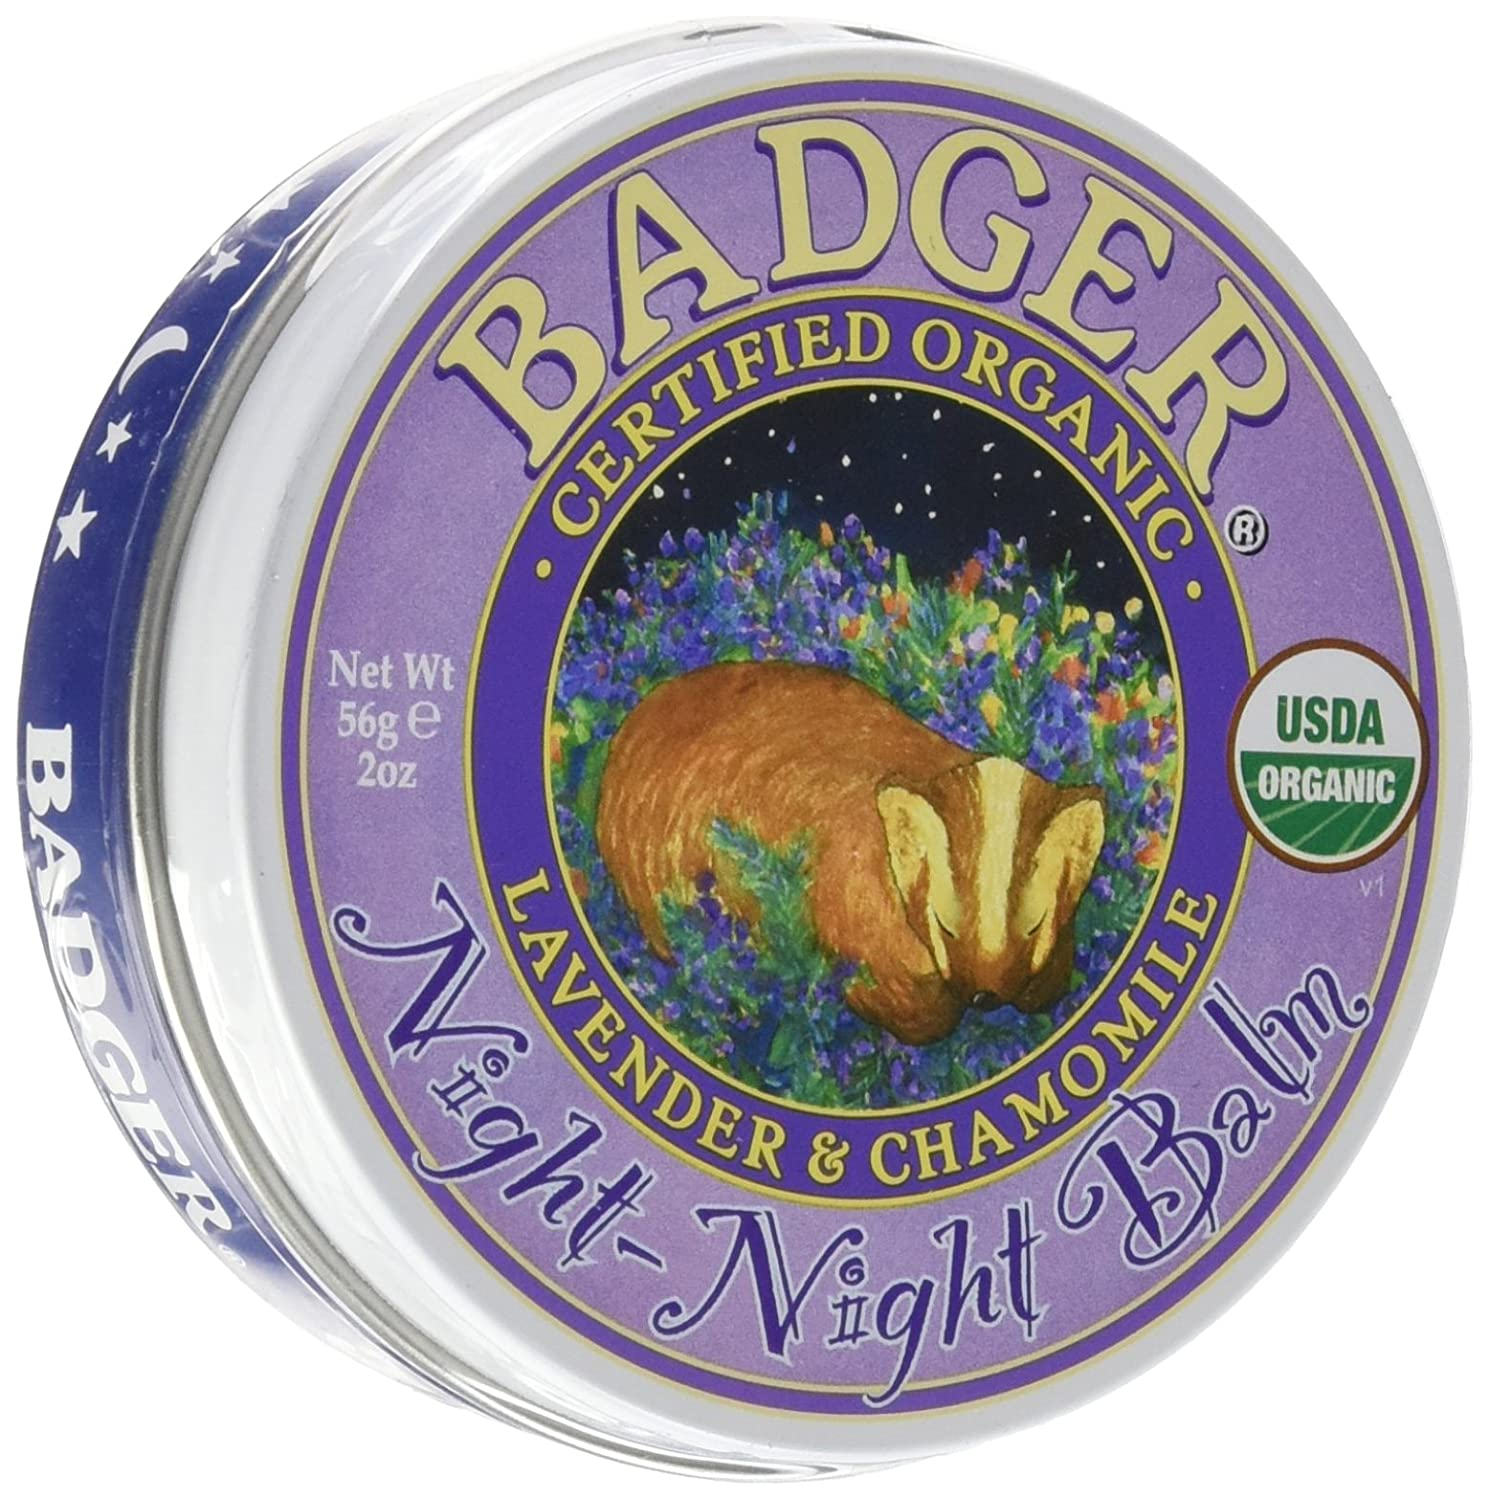 Badger Balms Night-Night Balm 56 Grams 720310